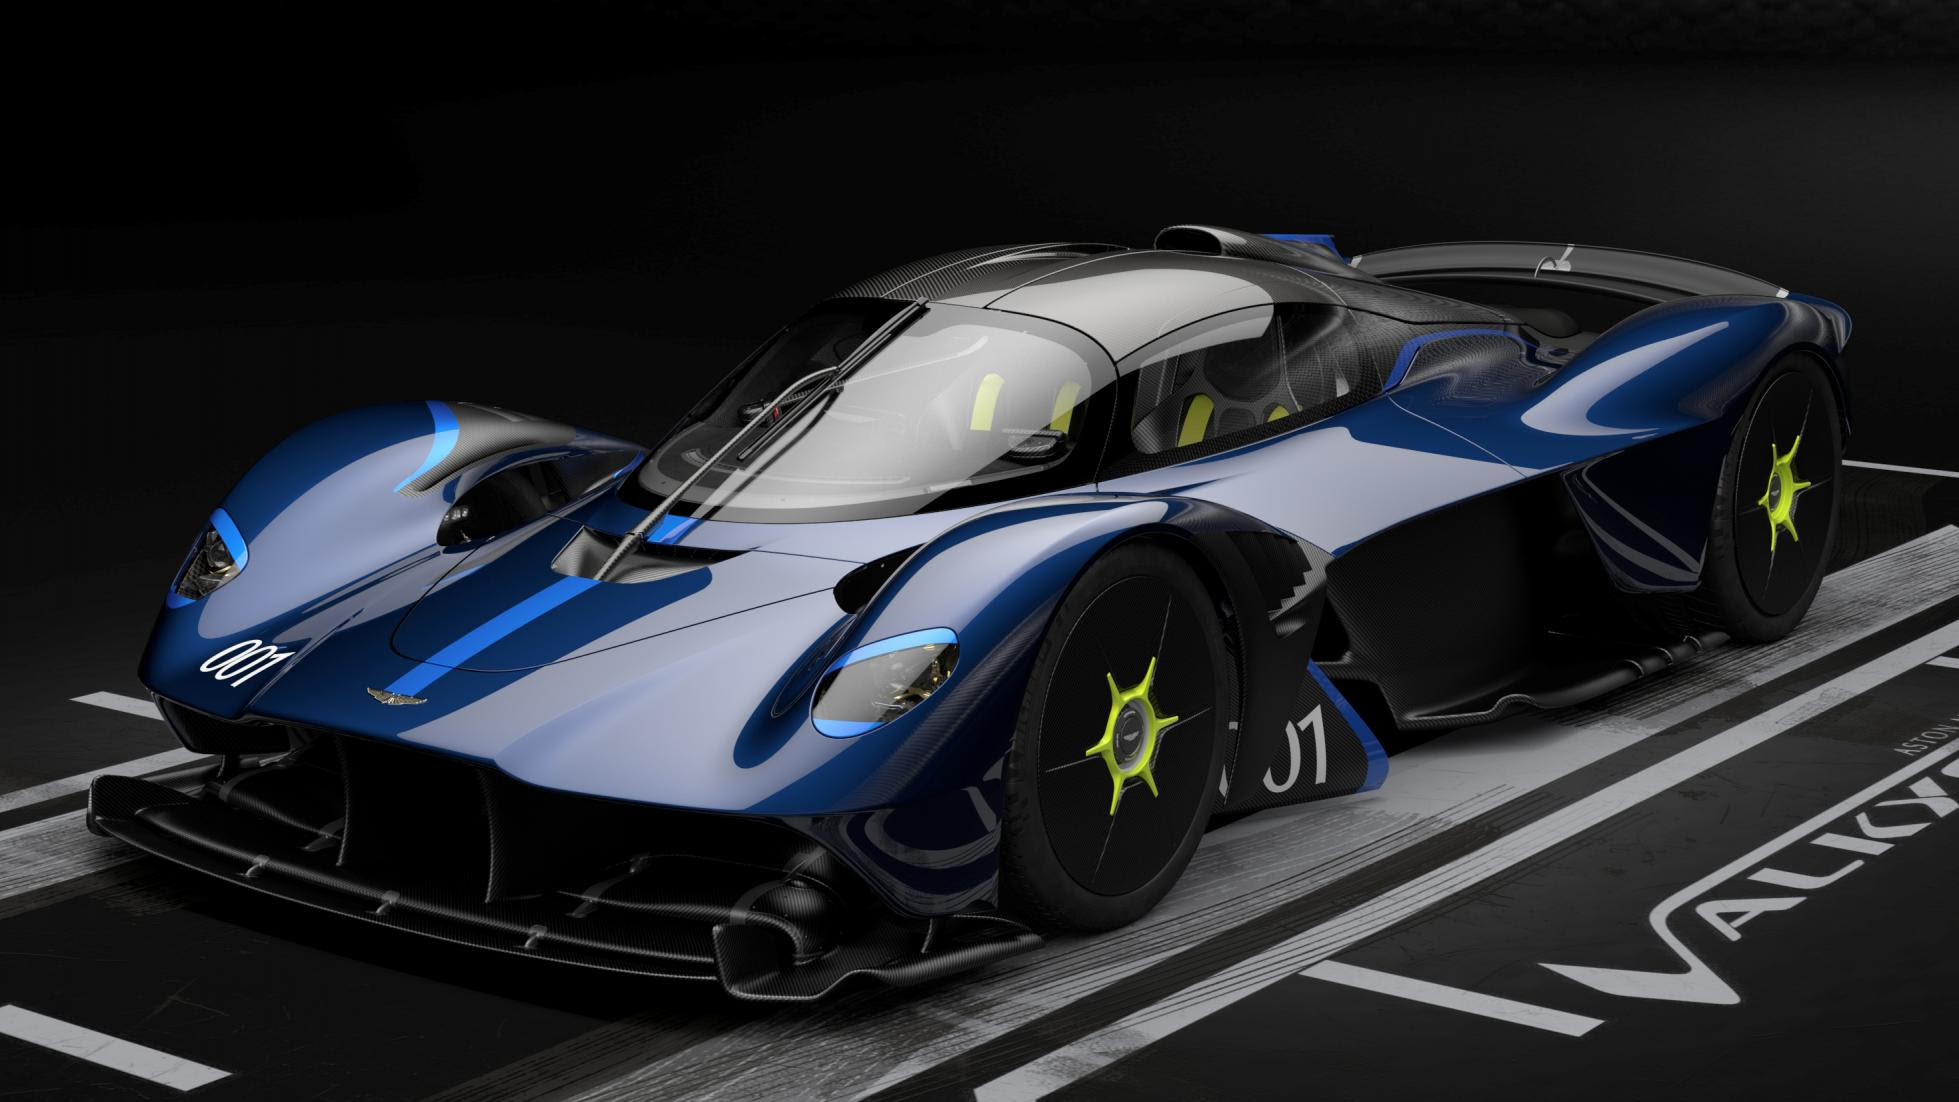 2019 Wanted Aston Martin Valky Slot Mclaren Speedtail Slot Wanted Car And Classic